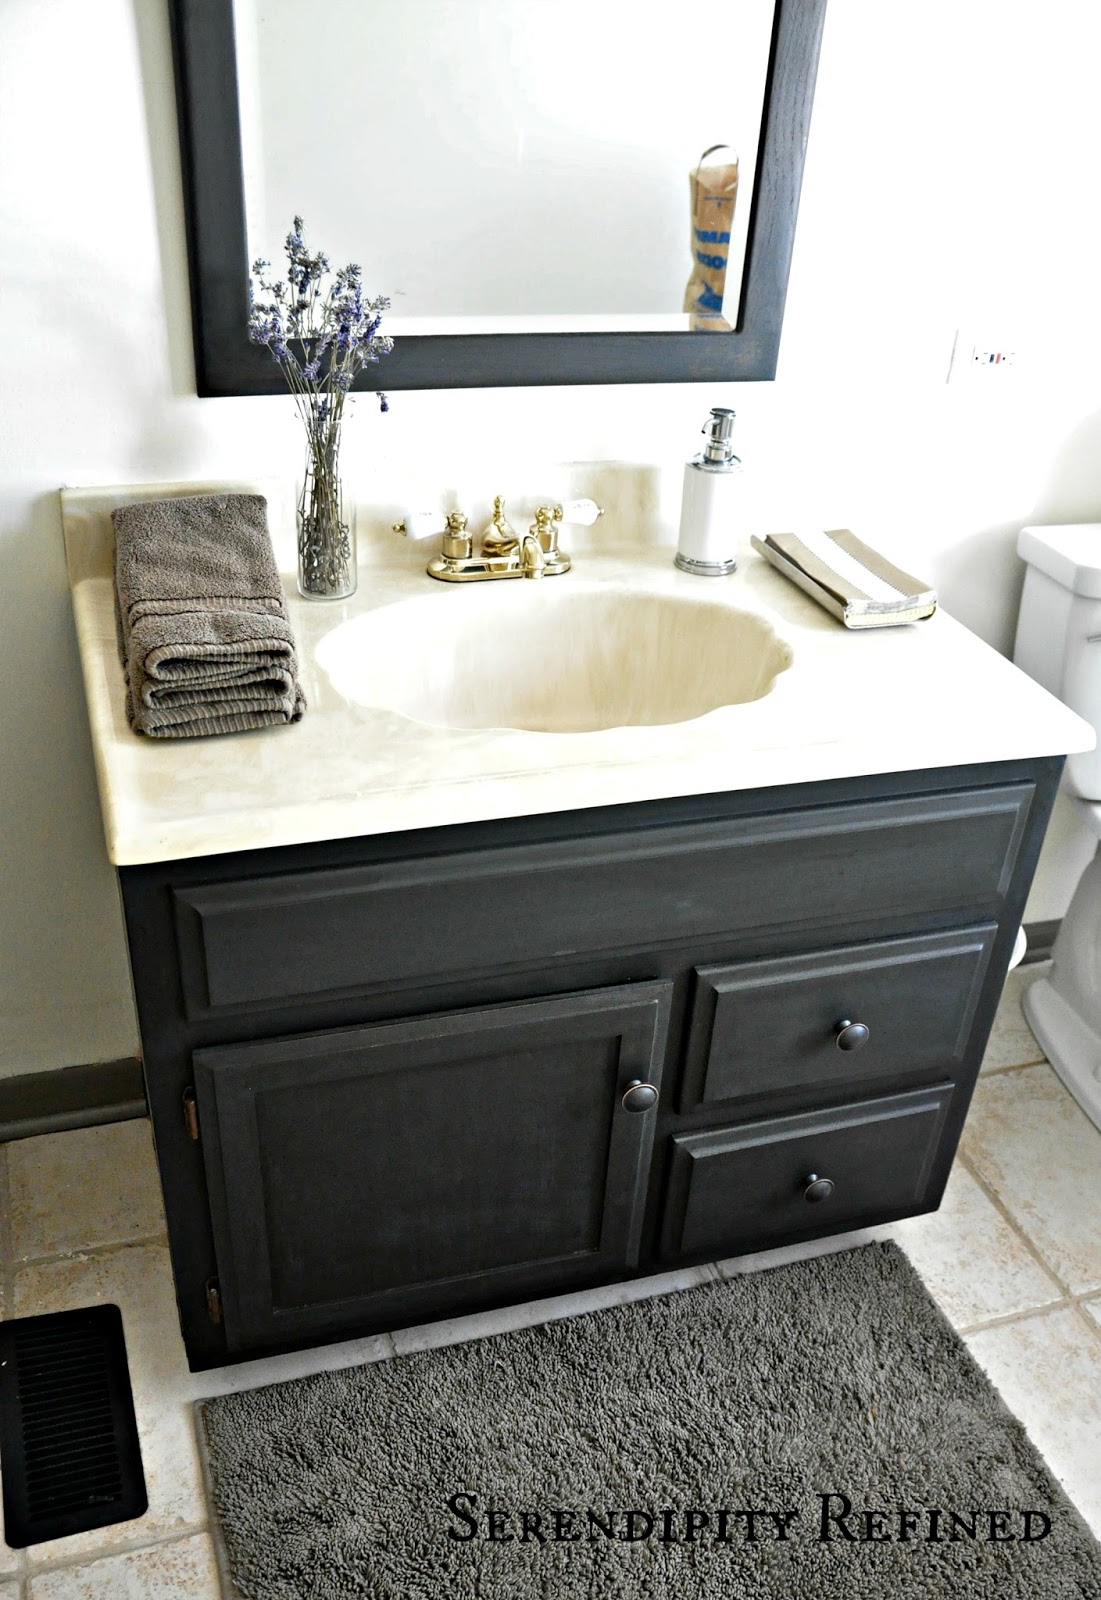 Updating Bathroom Vanity Lights : Bathroom With Oak Trim Ideas Ask Home Design